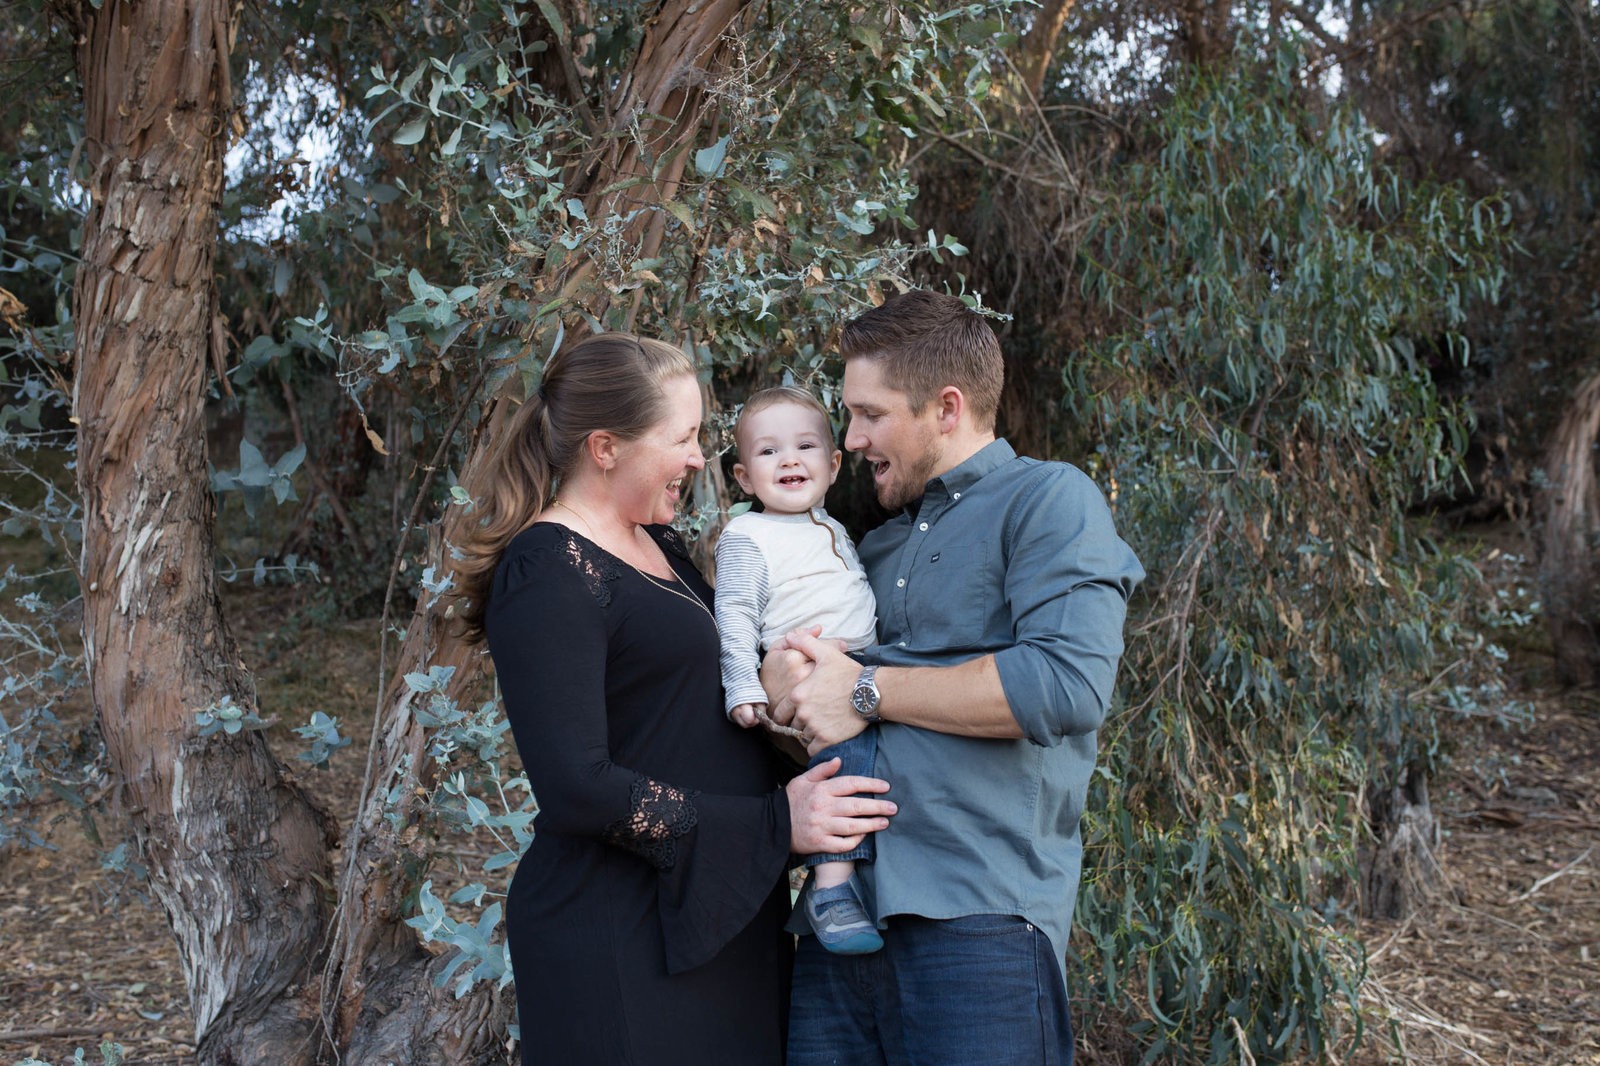 Seal-beach-family-gum-grove-park-photos-by-kelly-h-photo